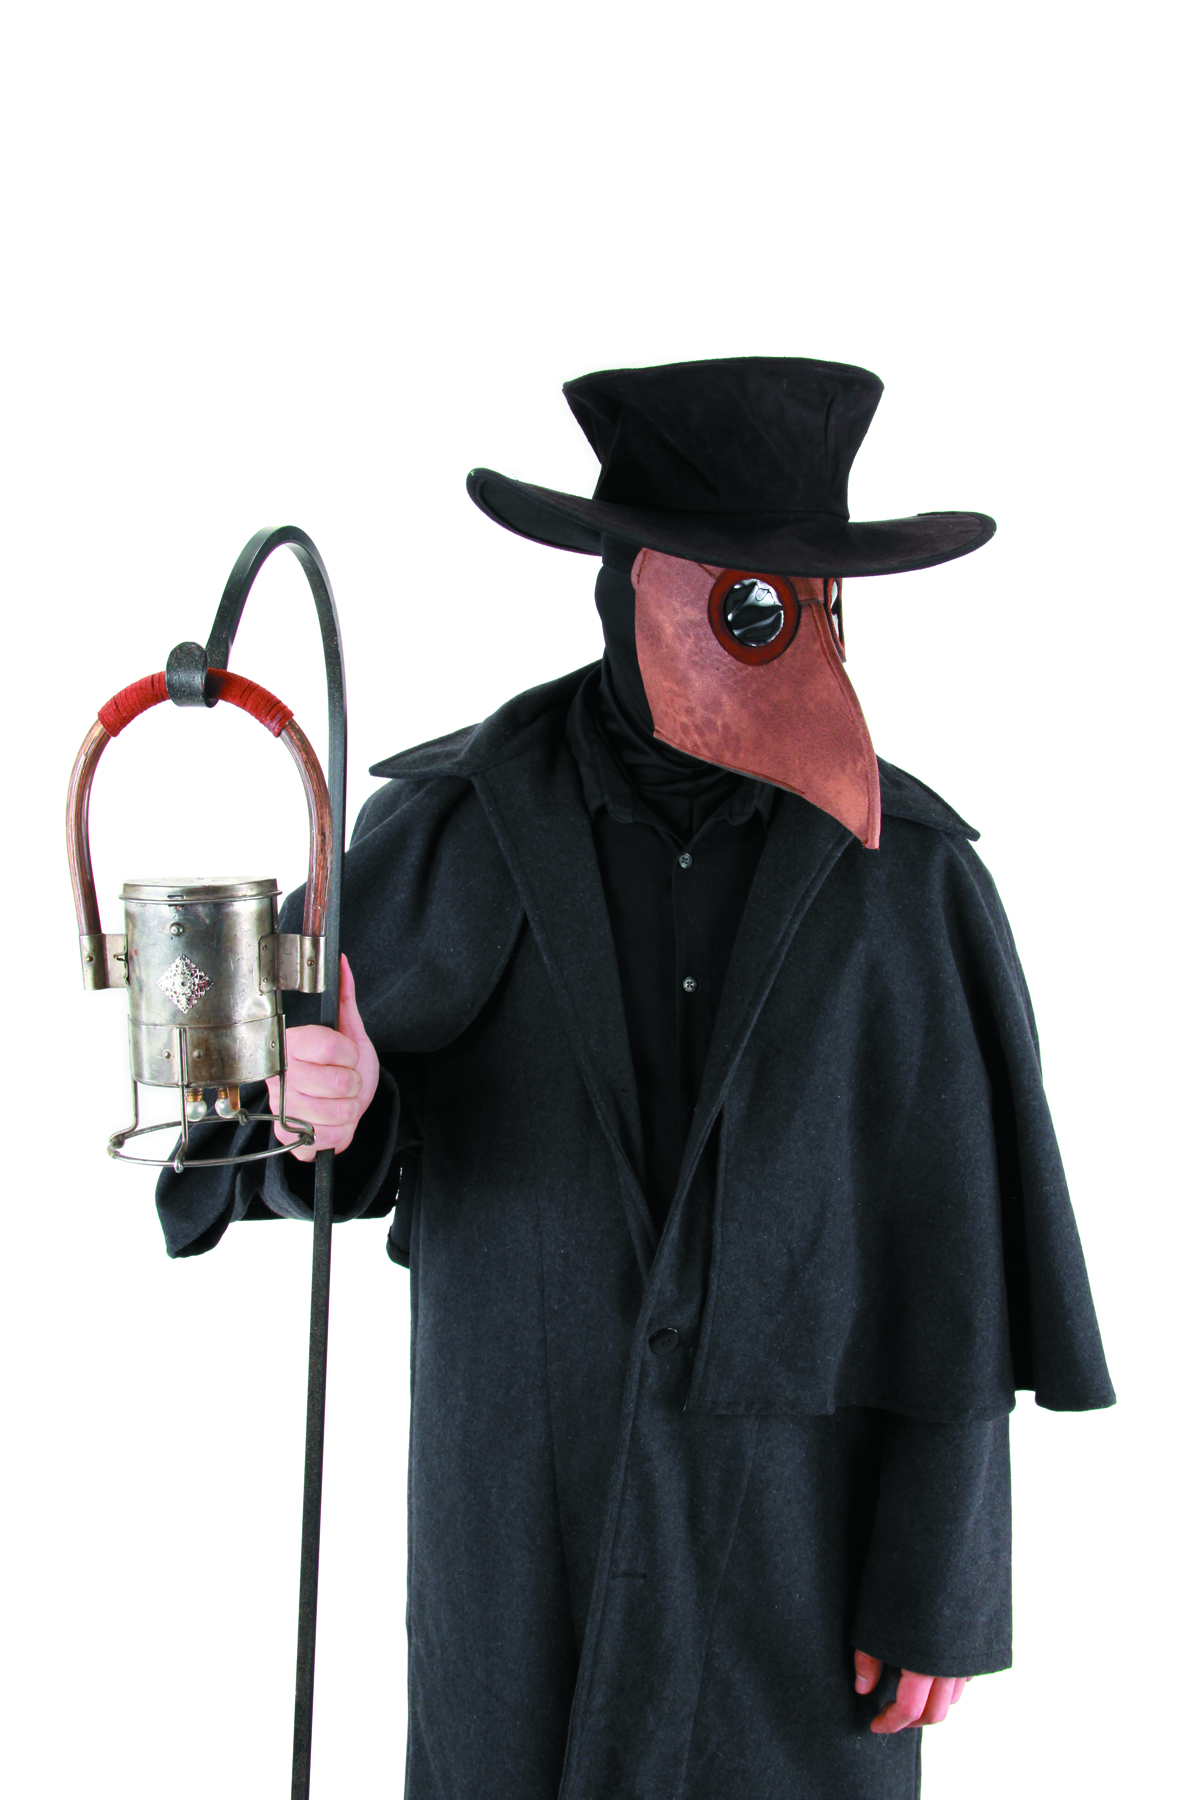 STEAMPUNK PLAGUE DOCTOR KIT